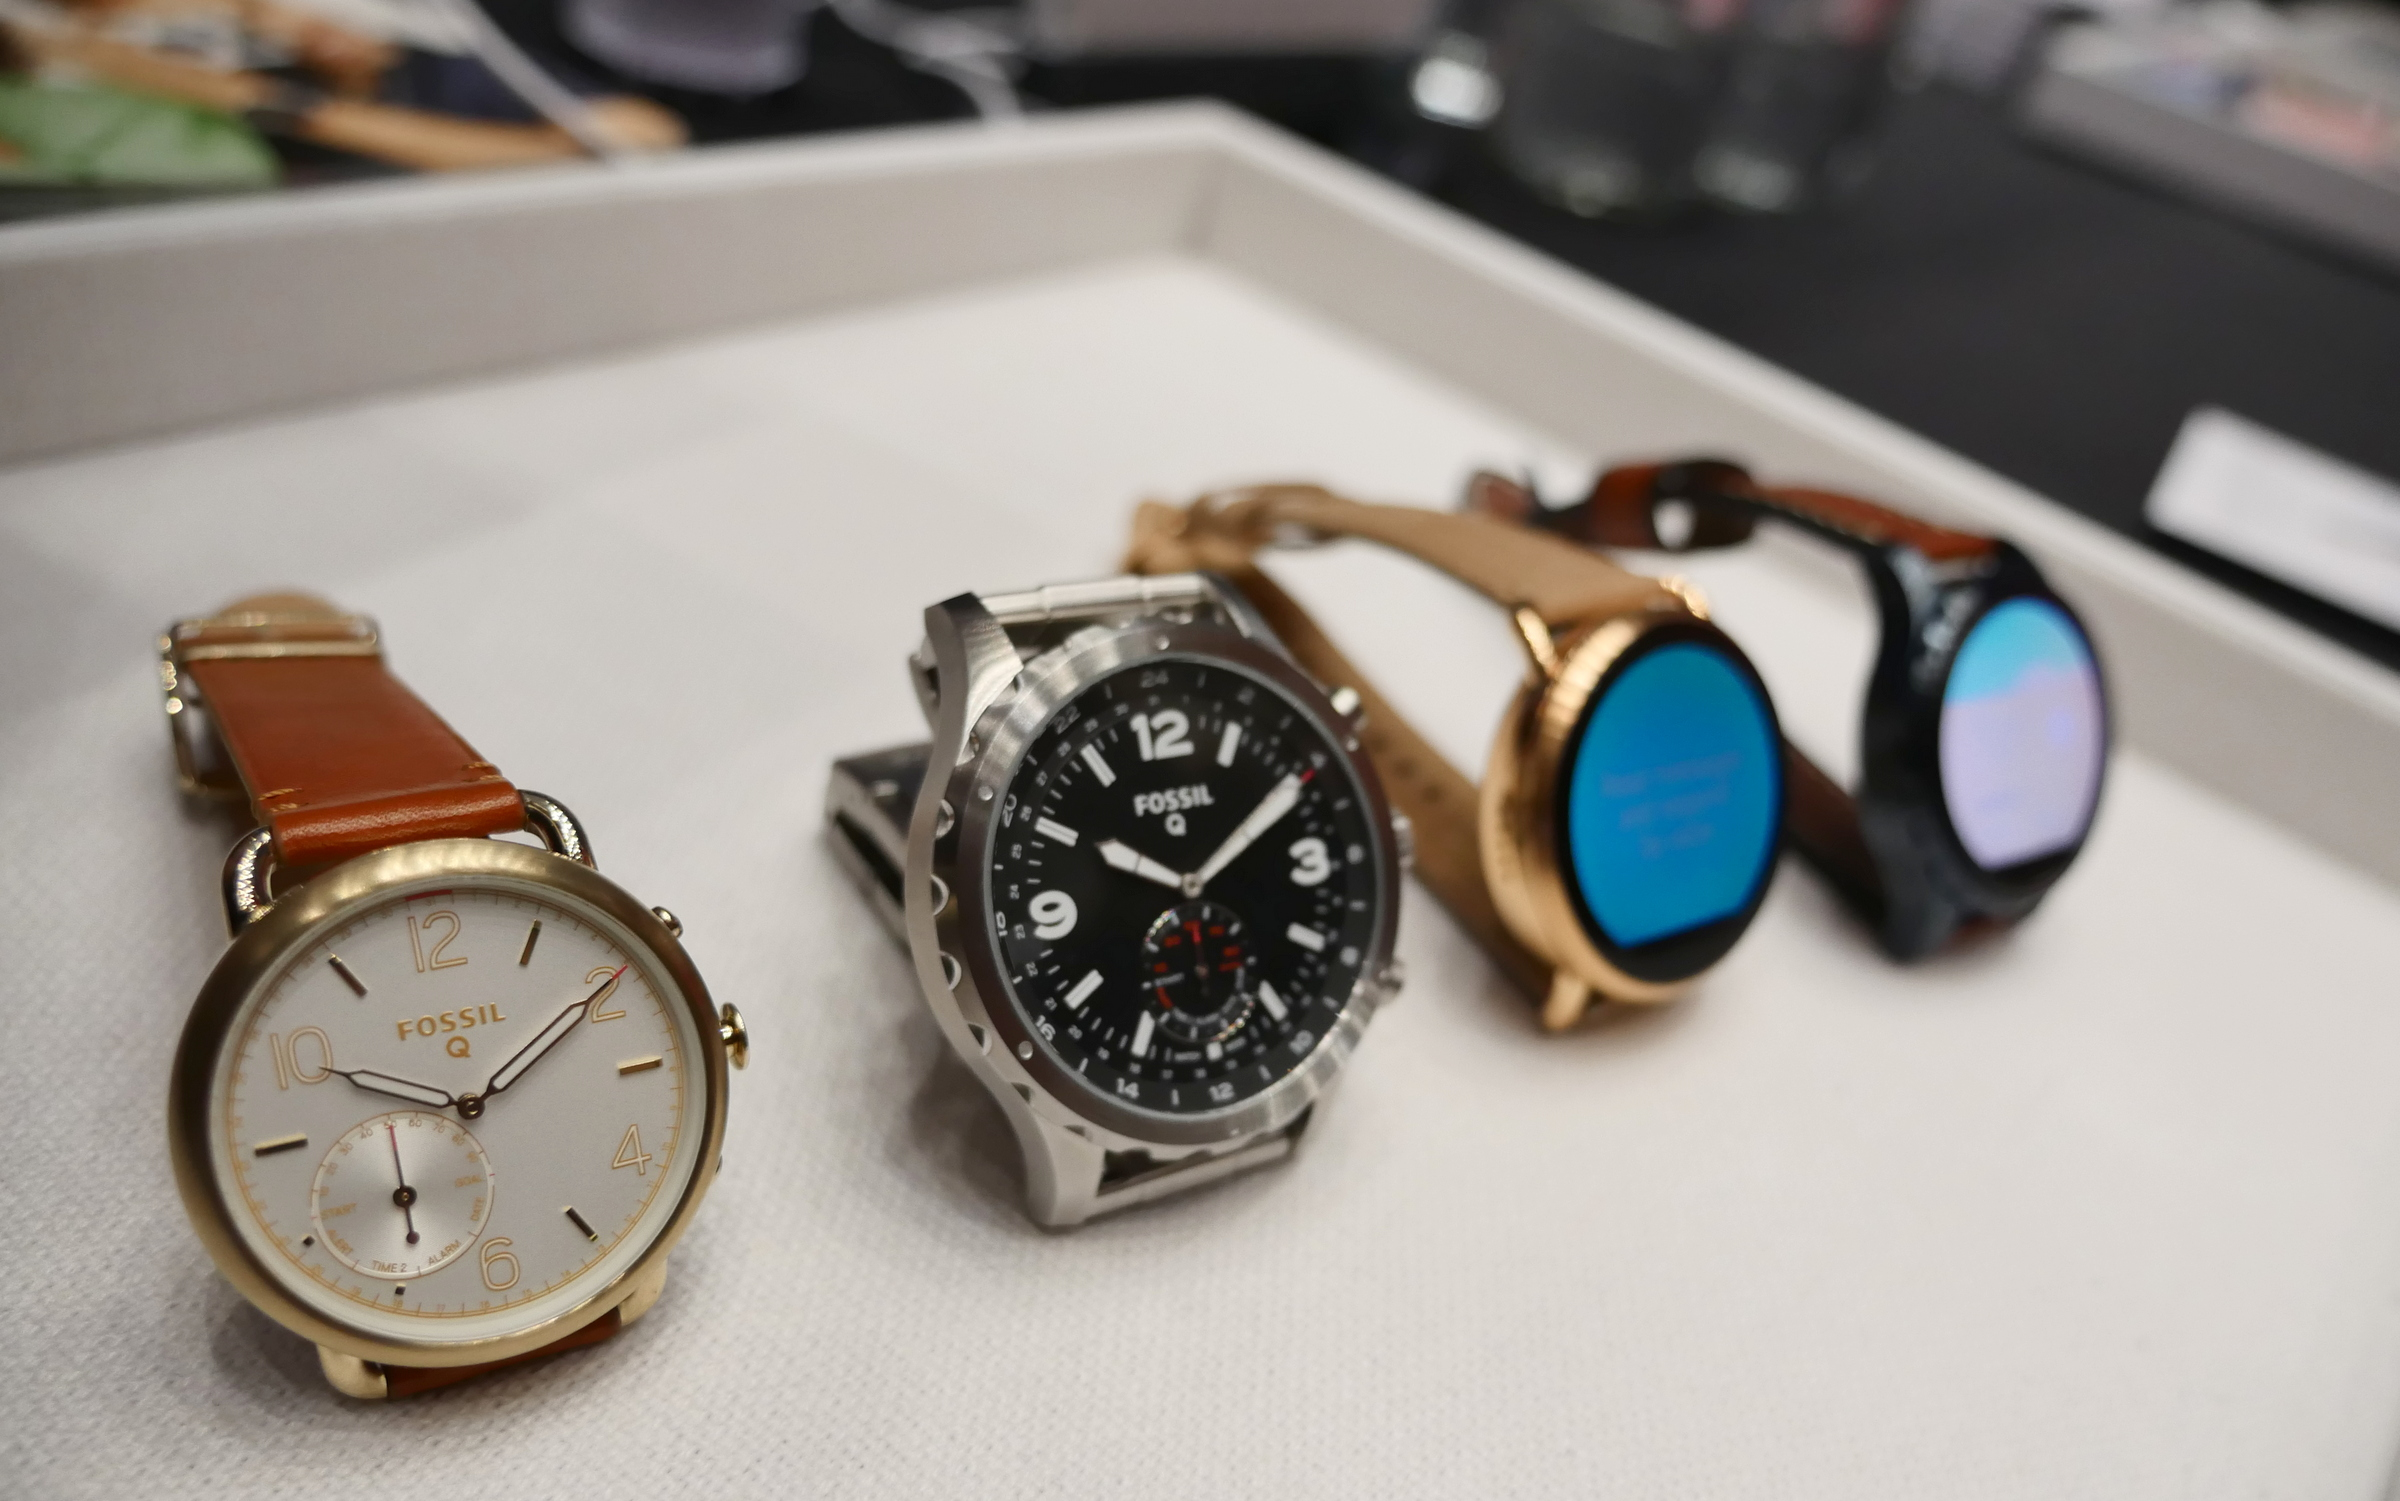 Hands On Fossil Q Marshal And Wander Android Wear Smartwatches 2